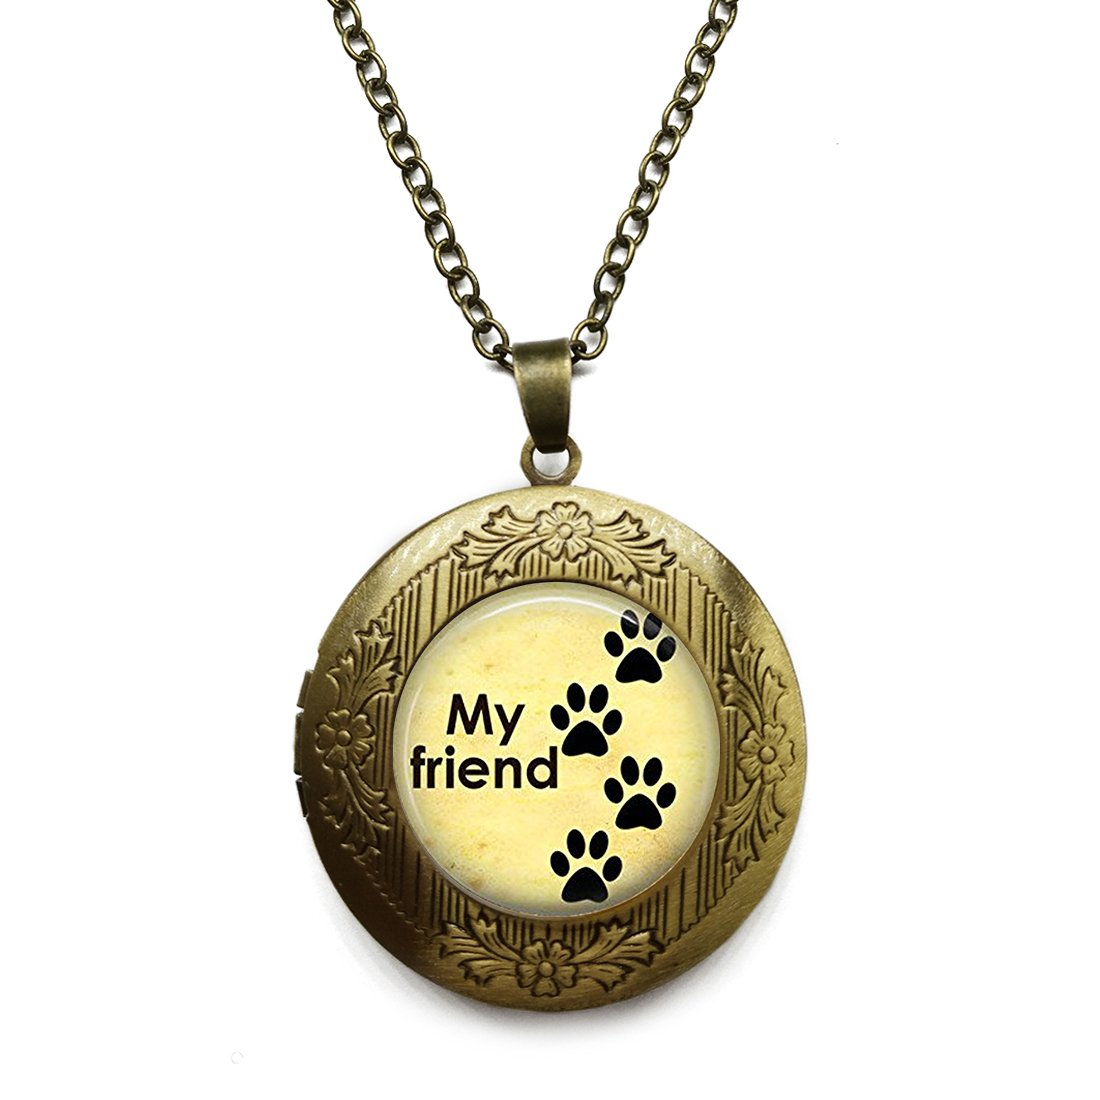 Vintage Bronze Tone Locket Picture Pendant Necklace My Friend Paw Print Glass Pendant Dog Lovers Included Free Brass Chain Gifts Personalized